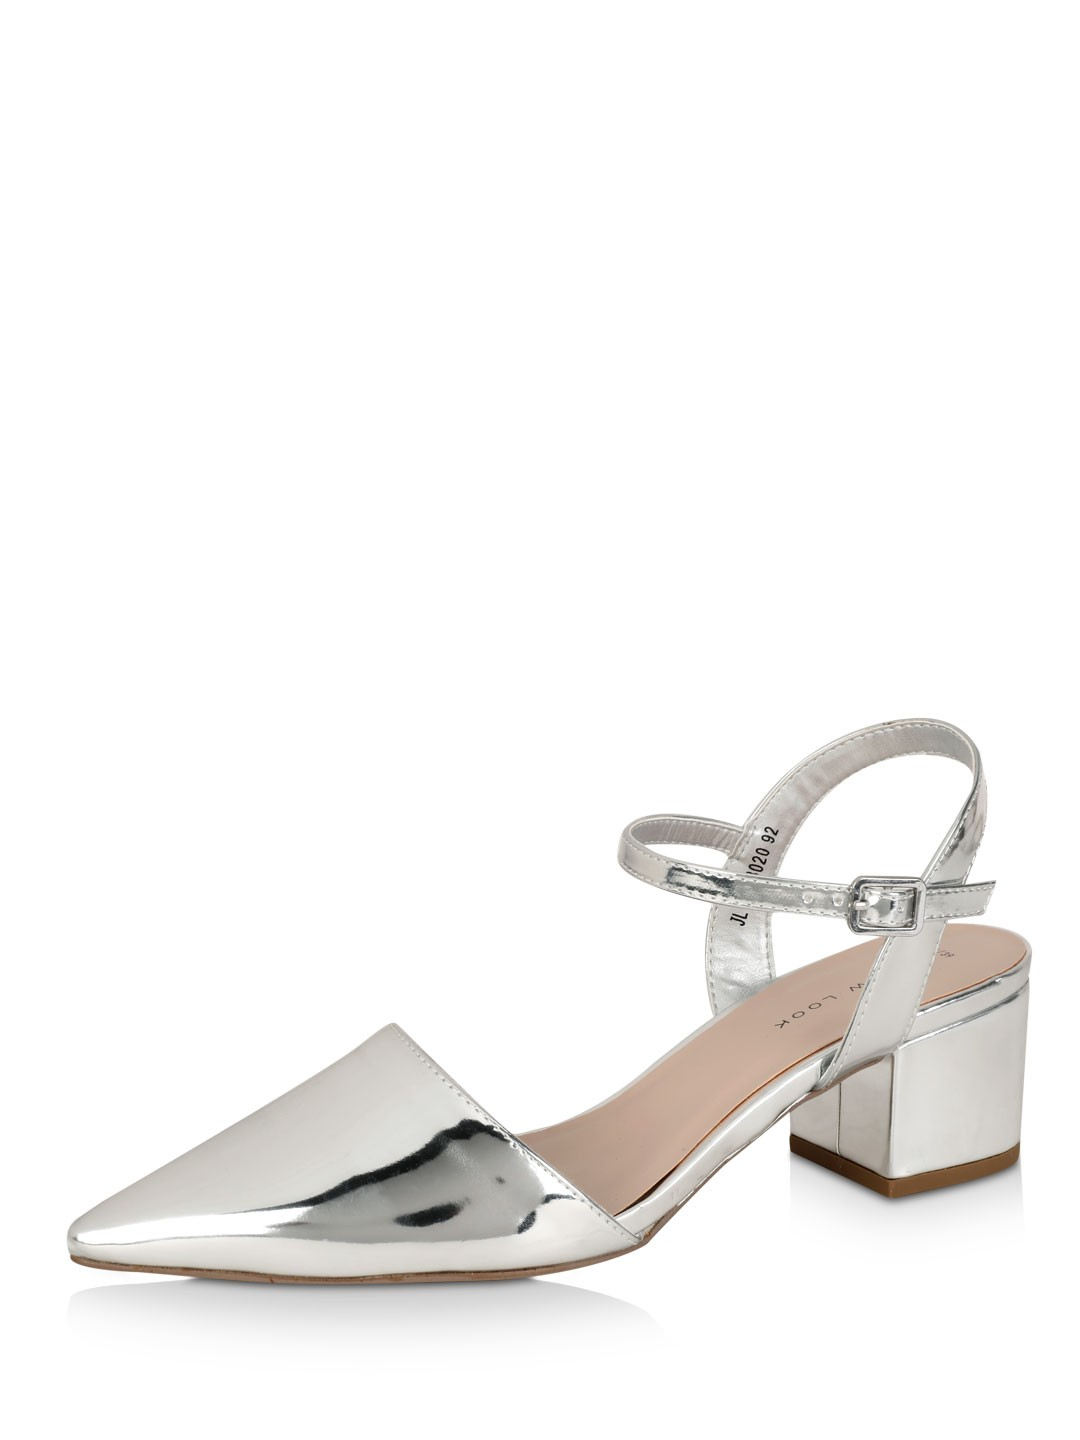 New Look Silver Ankle Strap Block Heel Court Shoes 1